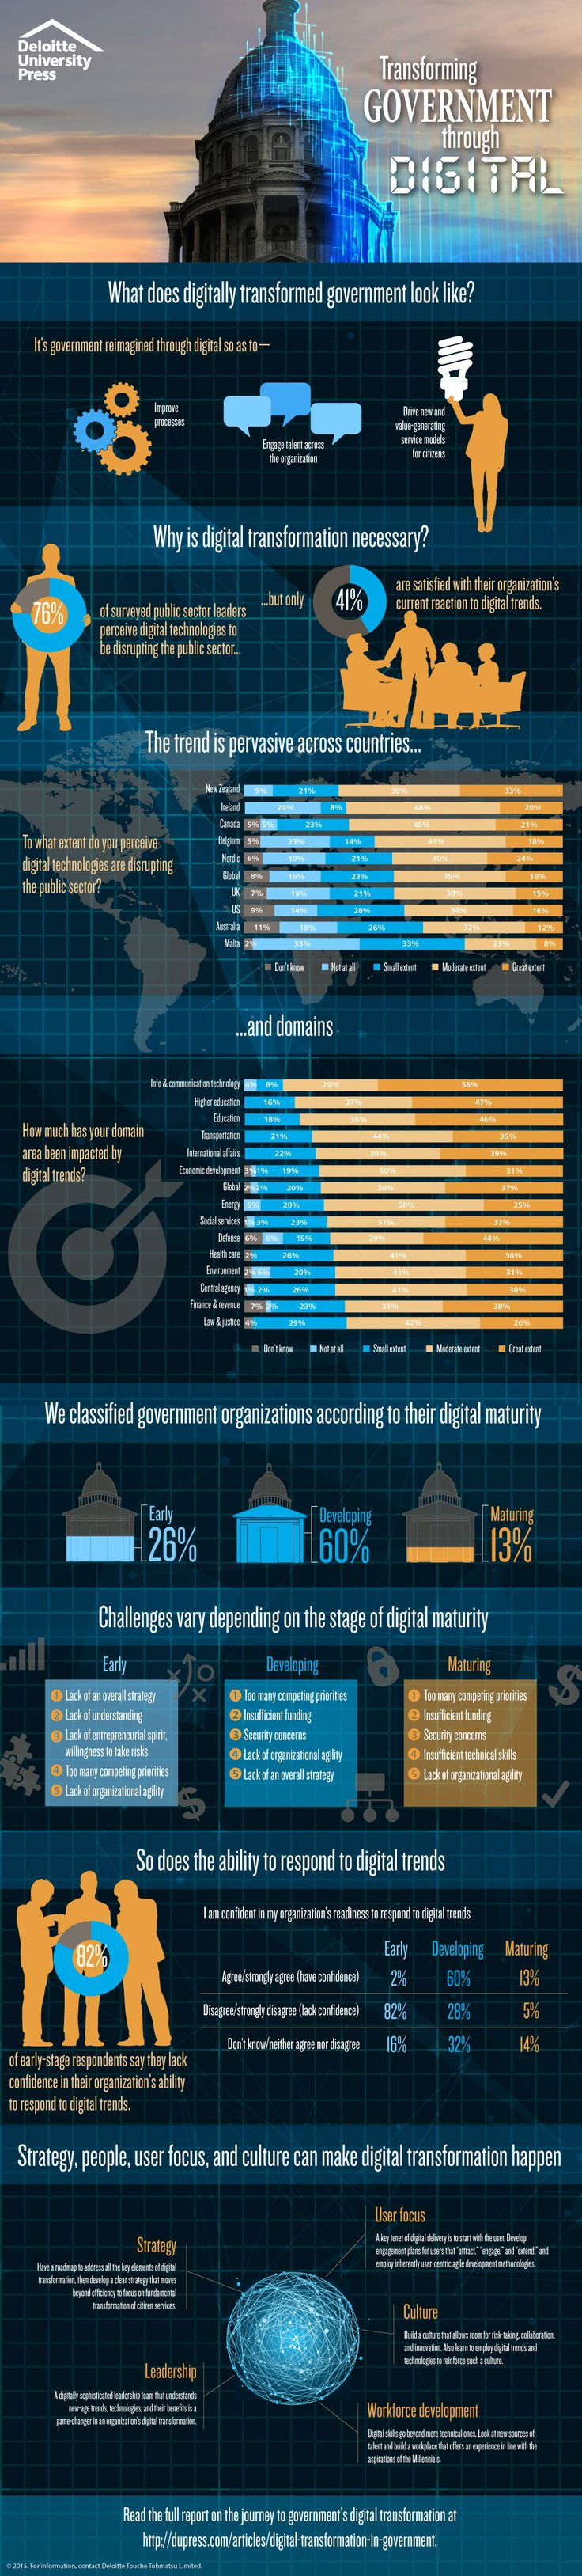 infographic Digital transformation in government